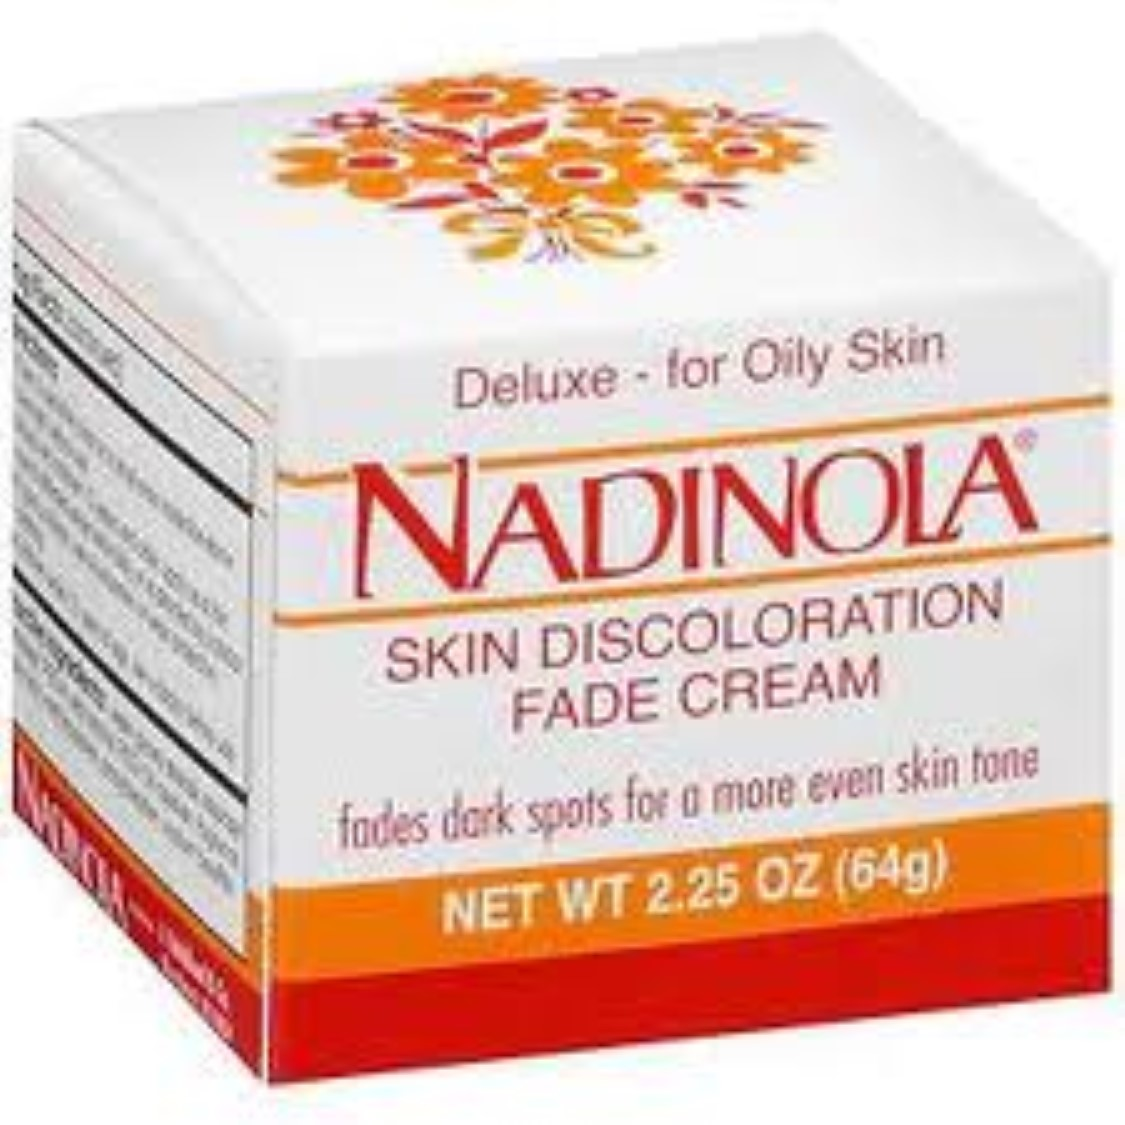 4 Pack - Nadinola Deluxe Skin Discoloration Fade Cream for Oily Skin 2.25 oz